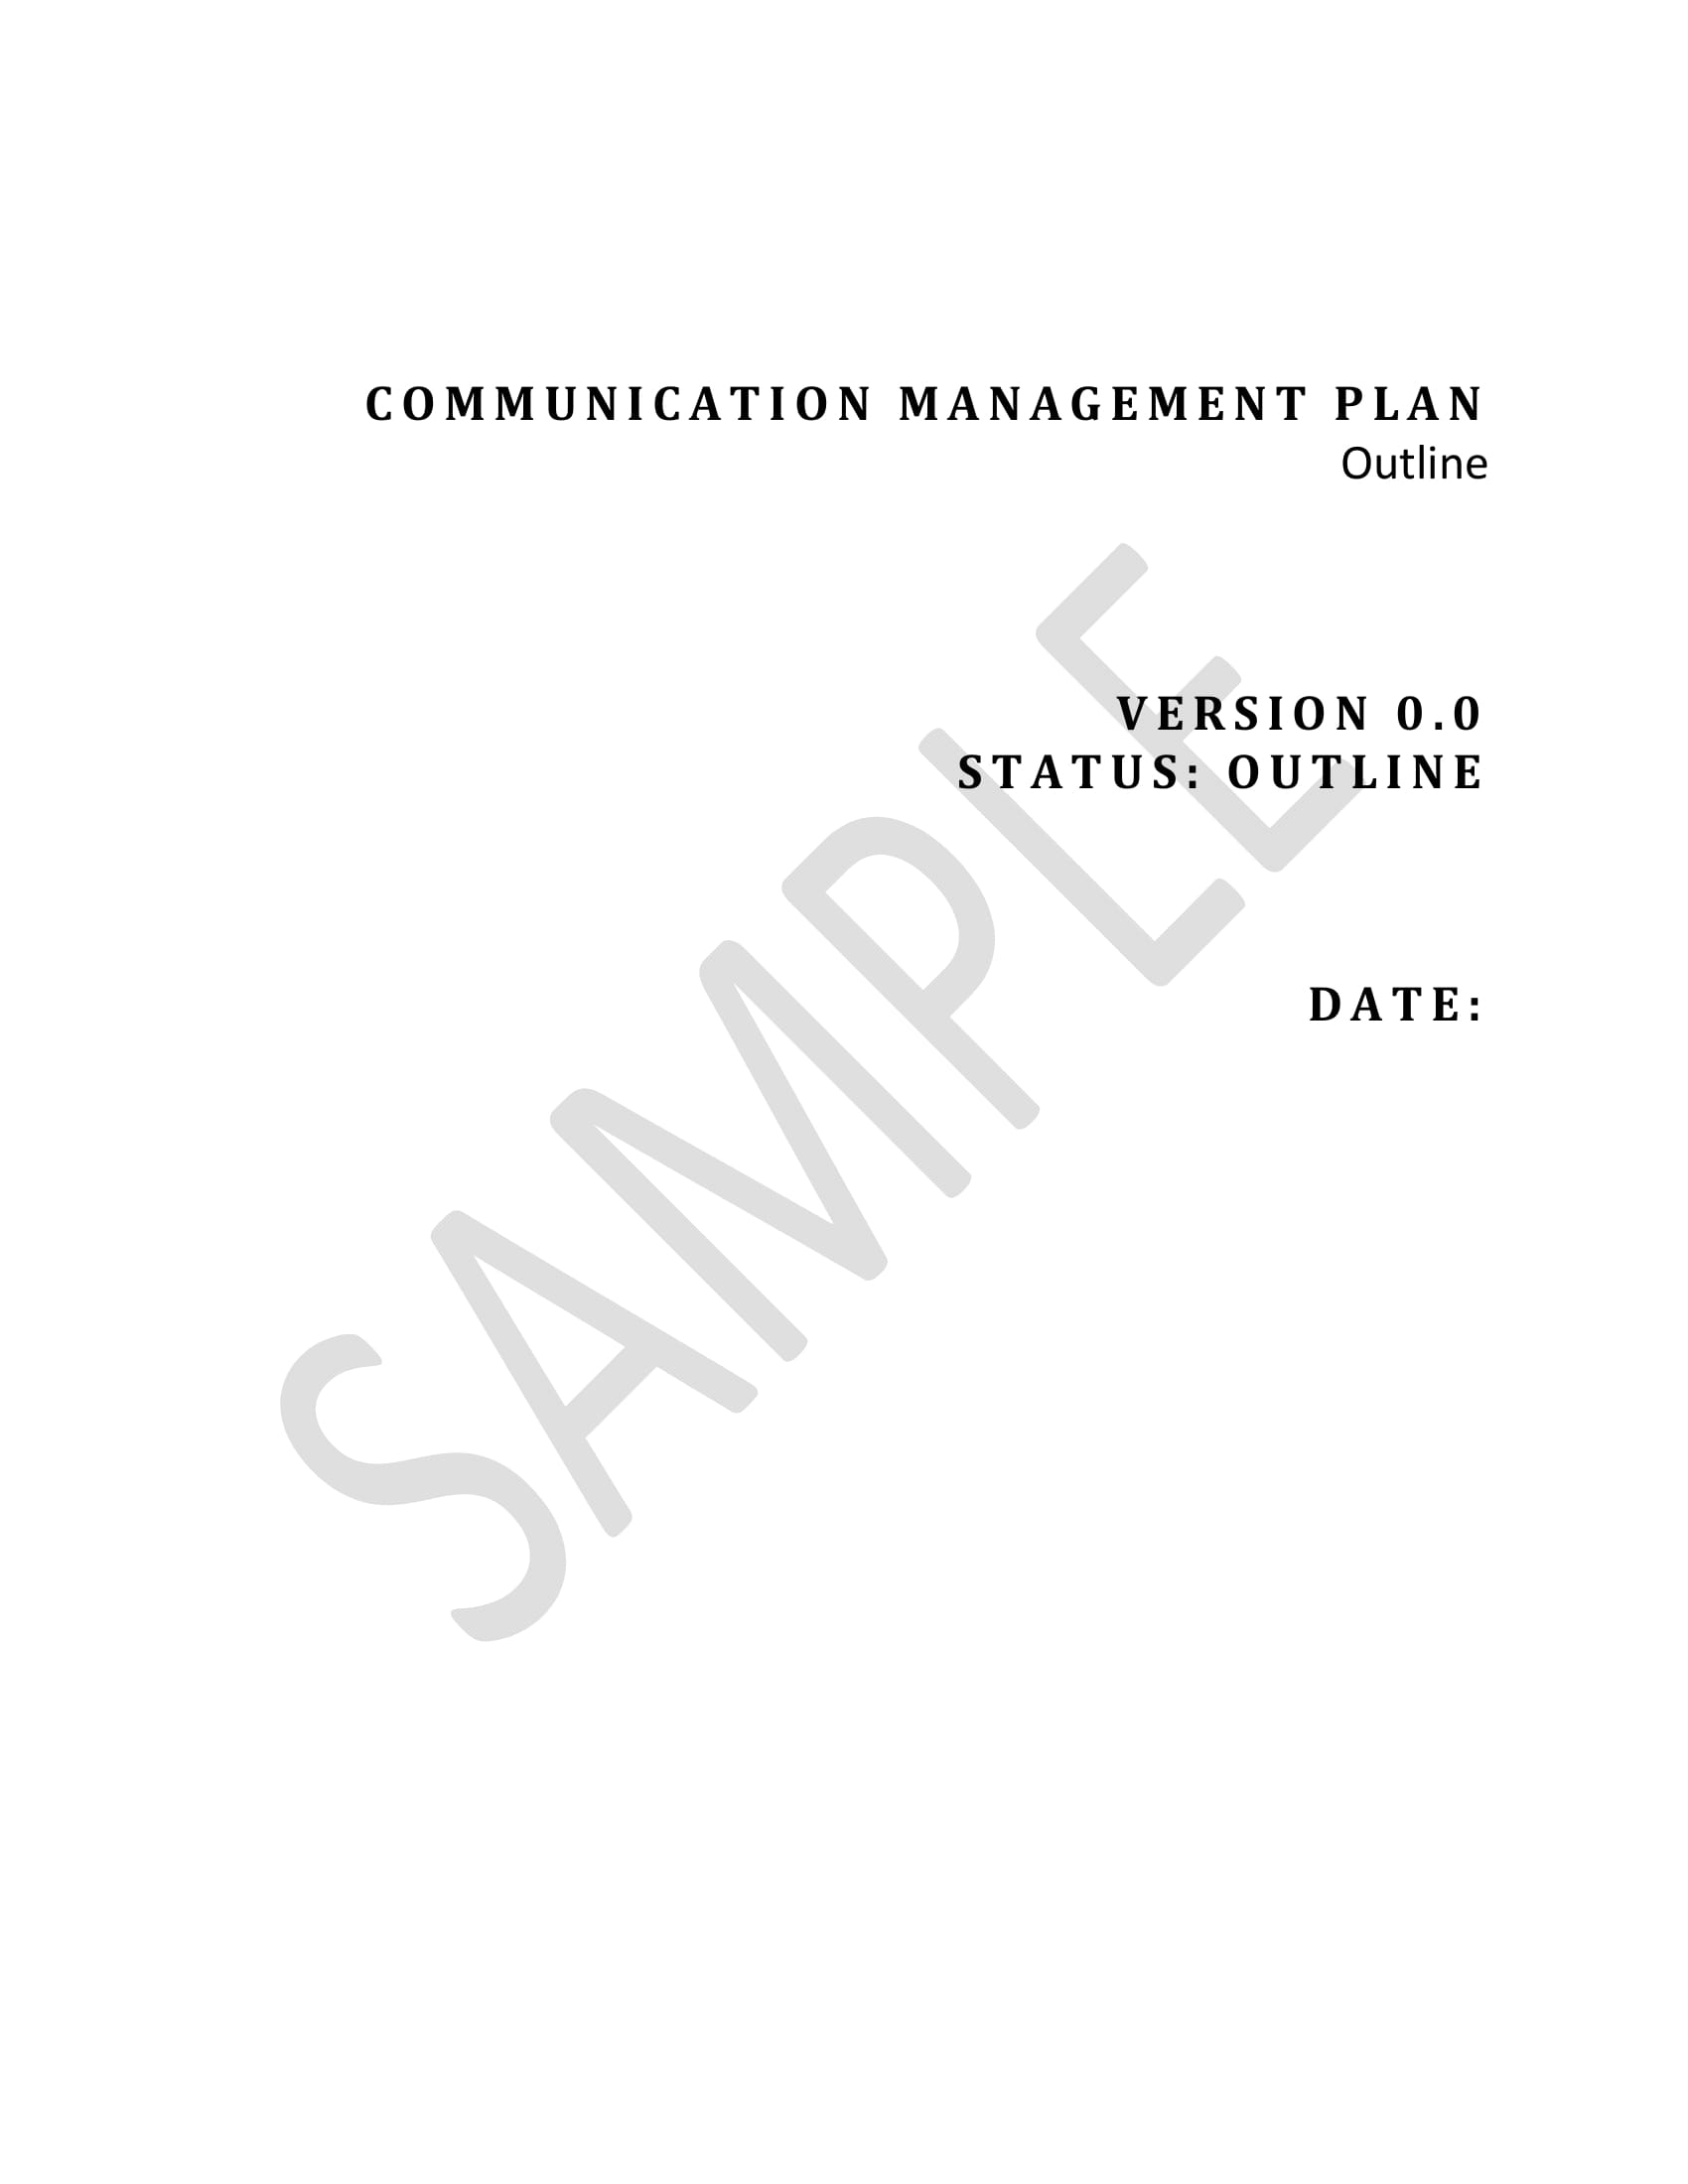 detailed communication management plan example